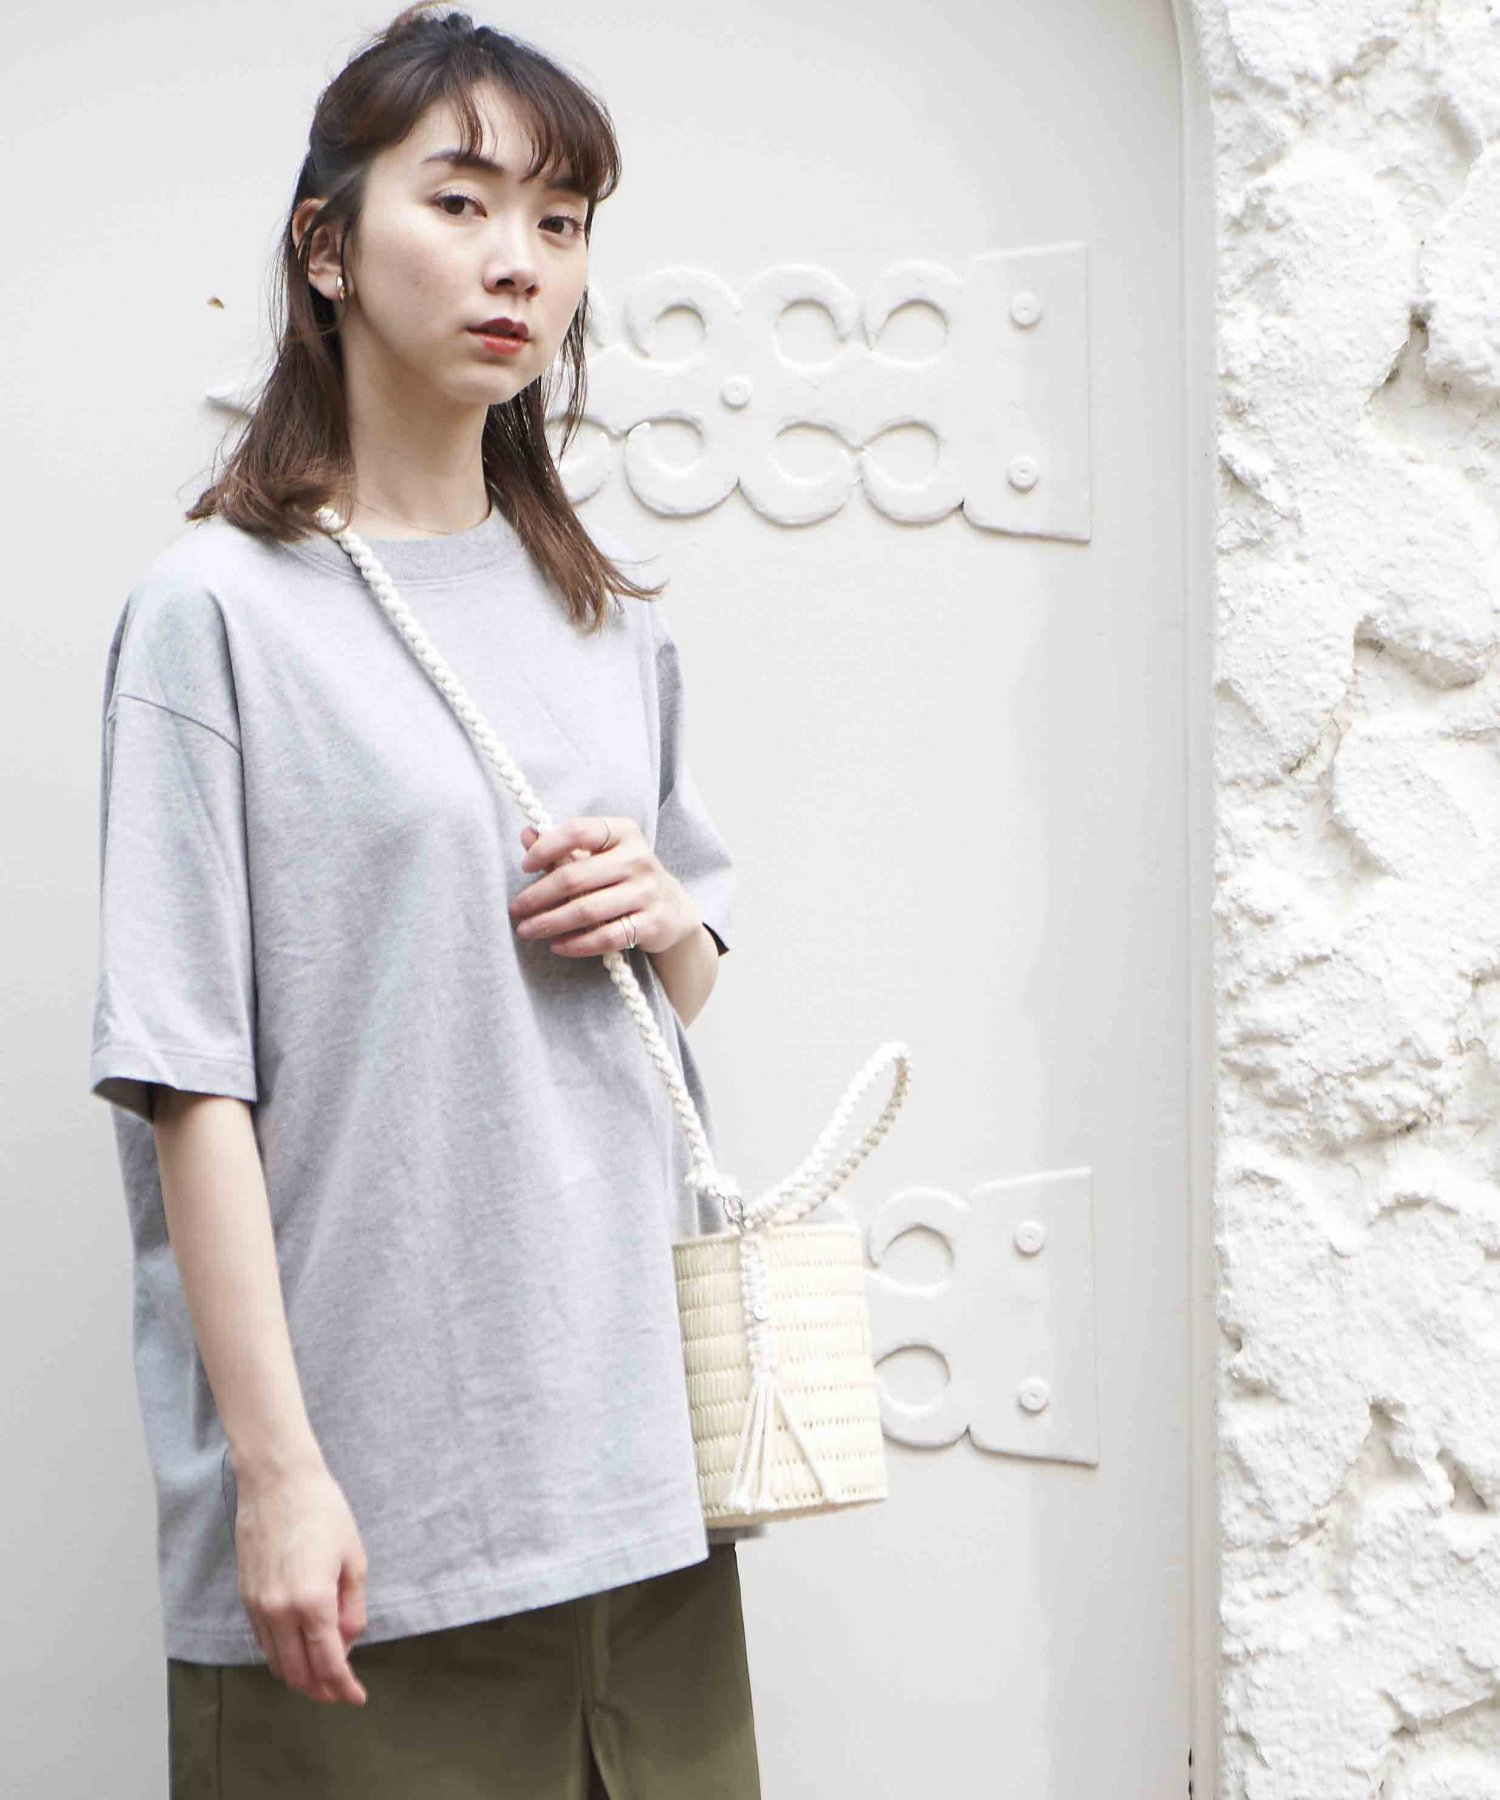 <img class='new_mark_img1' src='https://img.shop-pro.jp/img/new/icons15.gif' style='border:none;display:inline;margin:0px;padding:0px;width:auto;' />【REBIRTH PROJECT】SOUL COTTON T-shirt  GRY